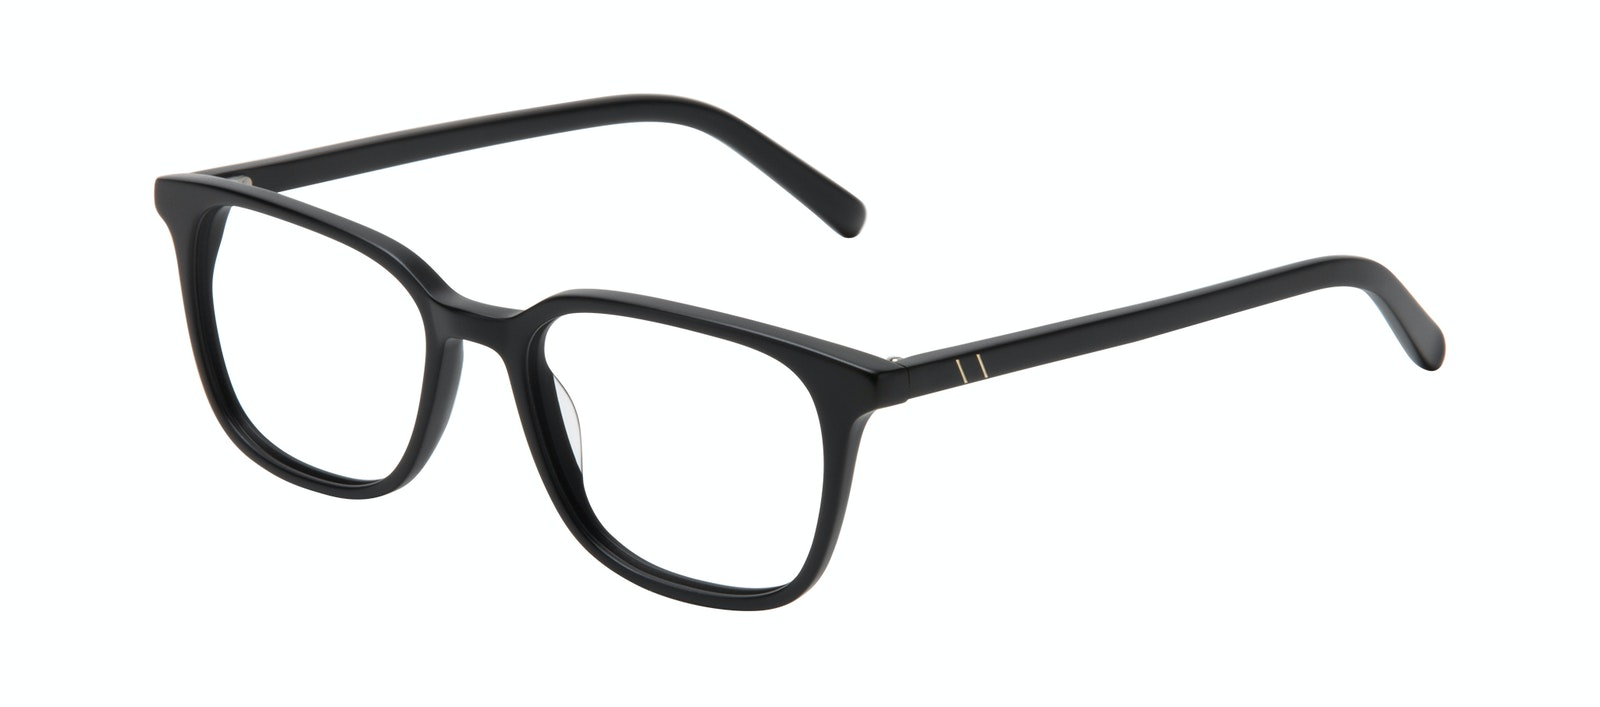 Affordable Fashion Glasses Square Eyeglasses Men Choice Black Matte Tilt